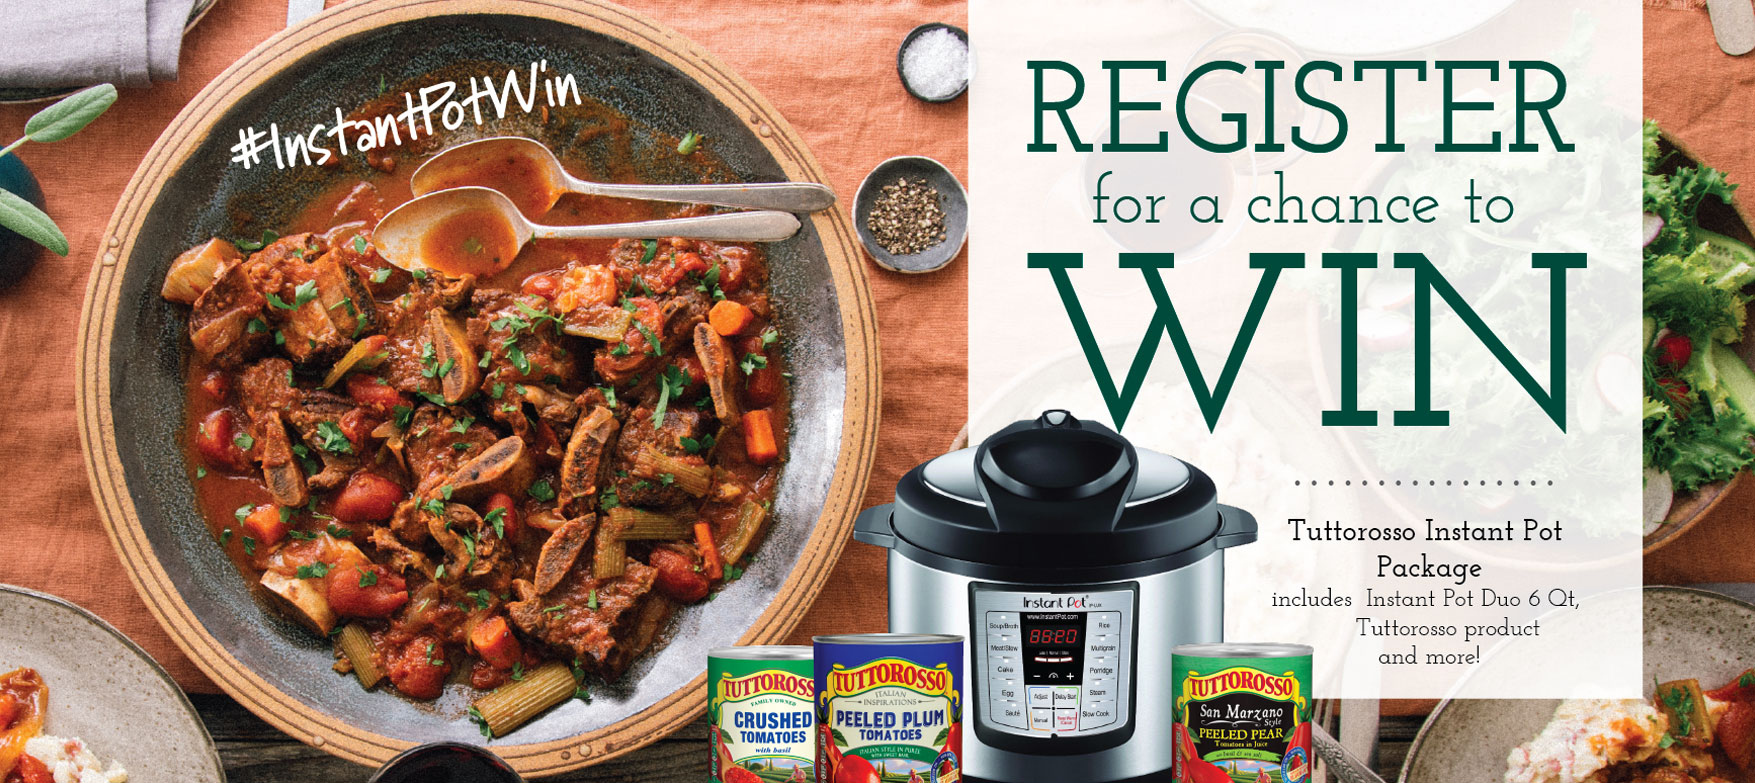 Enter to win one of 6Instant Pot® Duo 6 Quart Electric Pressure Cookersfrom Tuttorosso Tomatoes